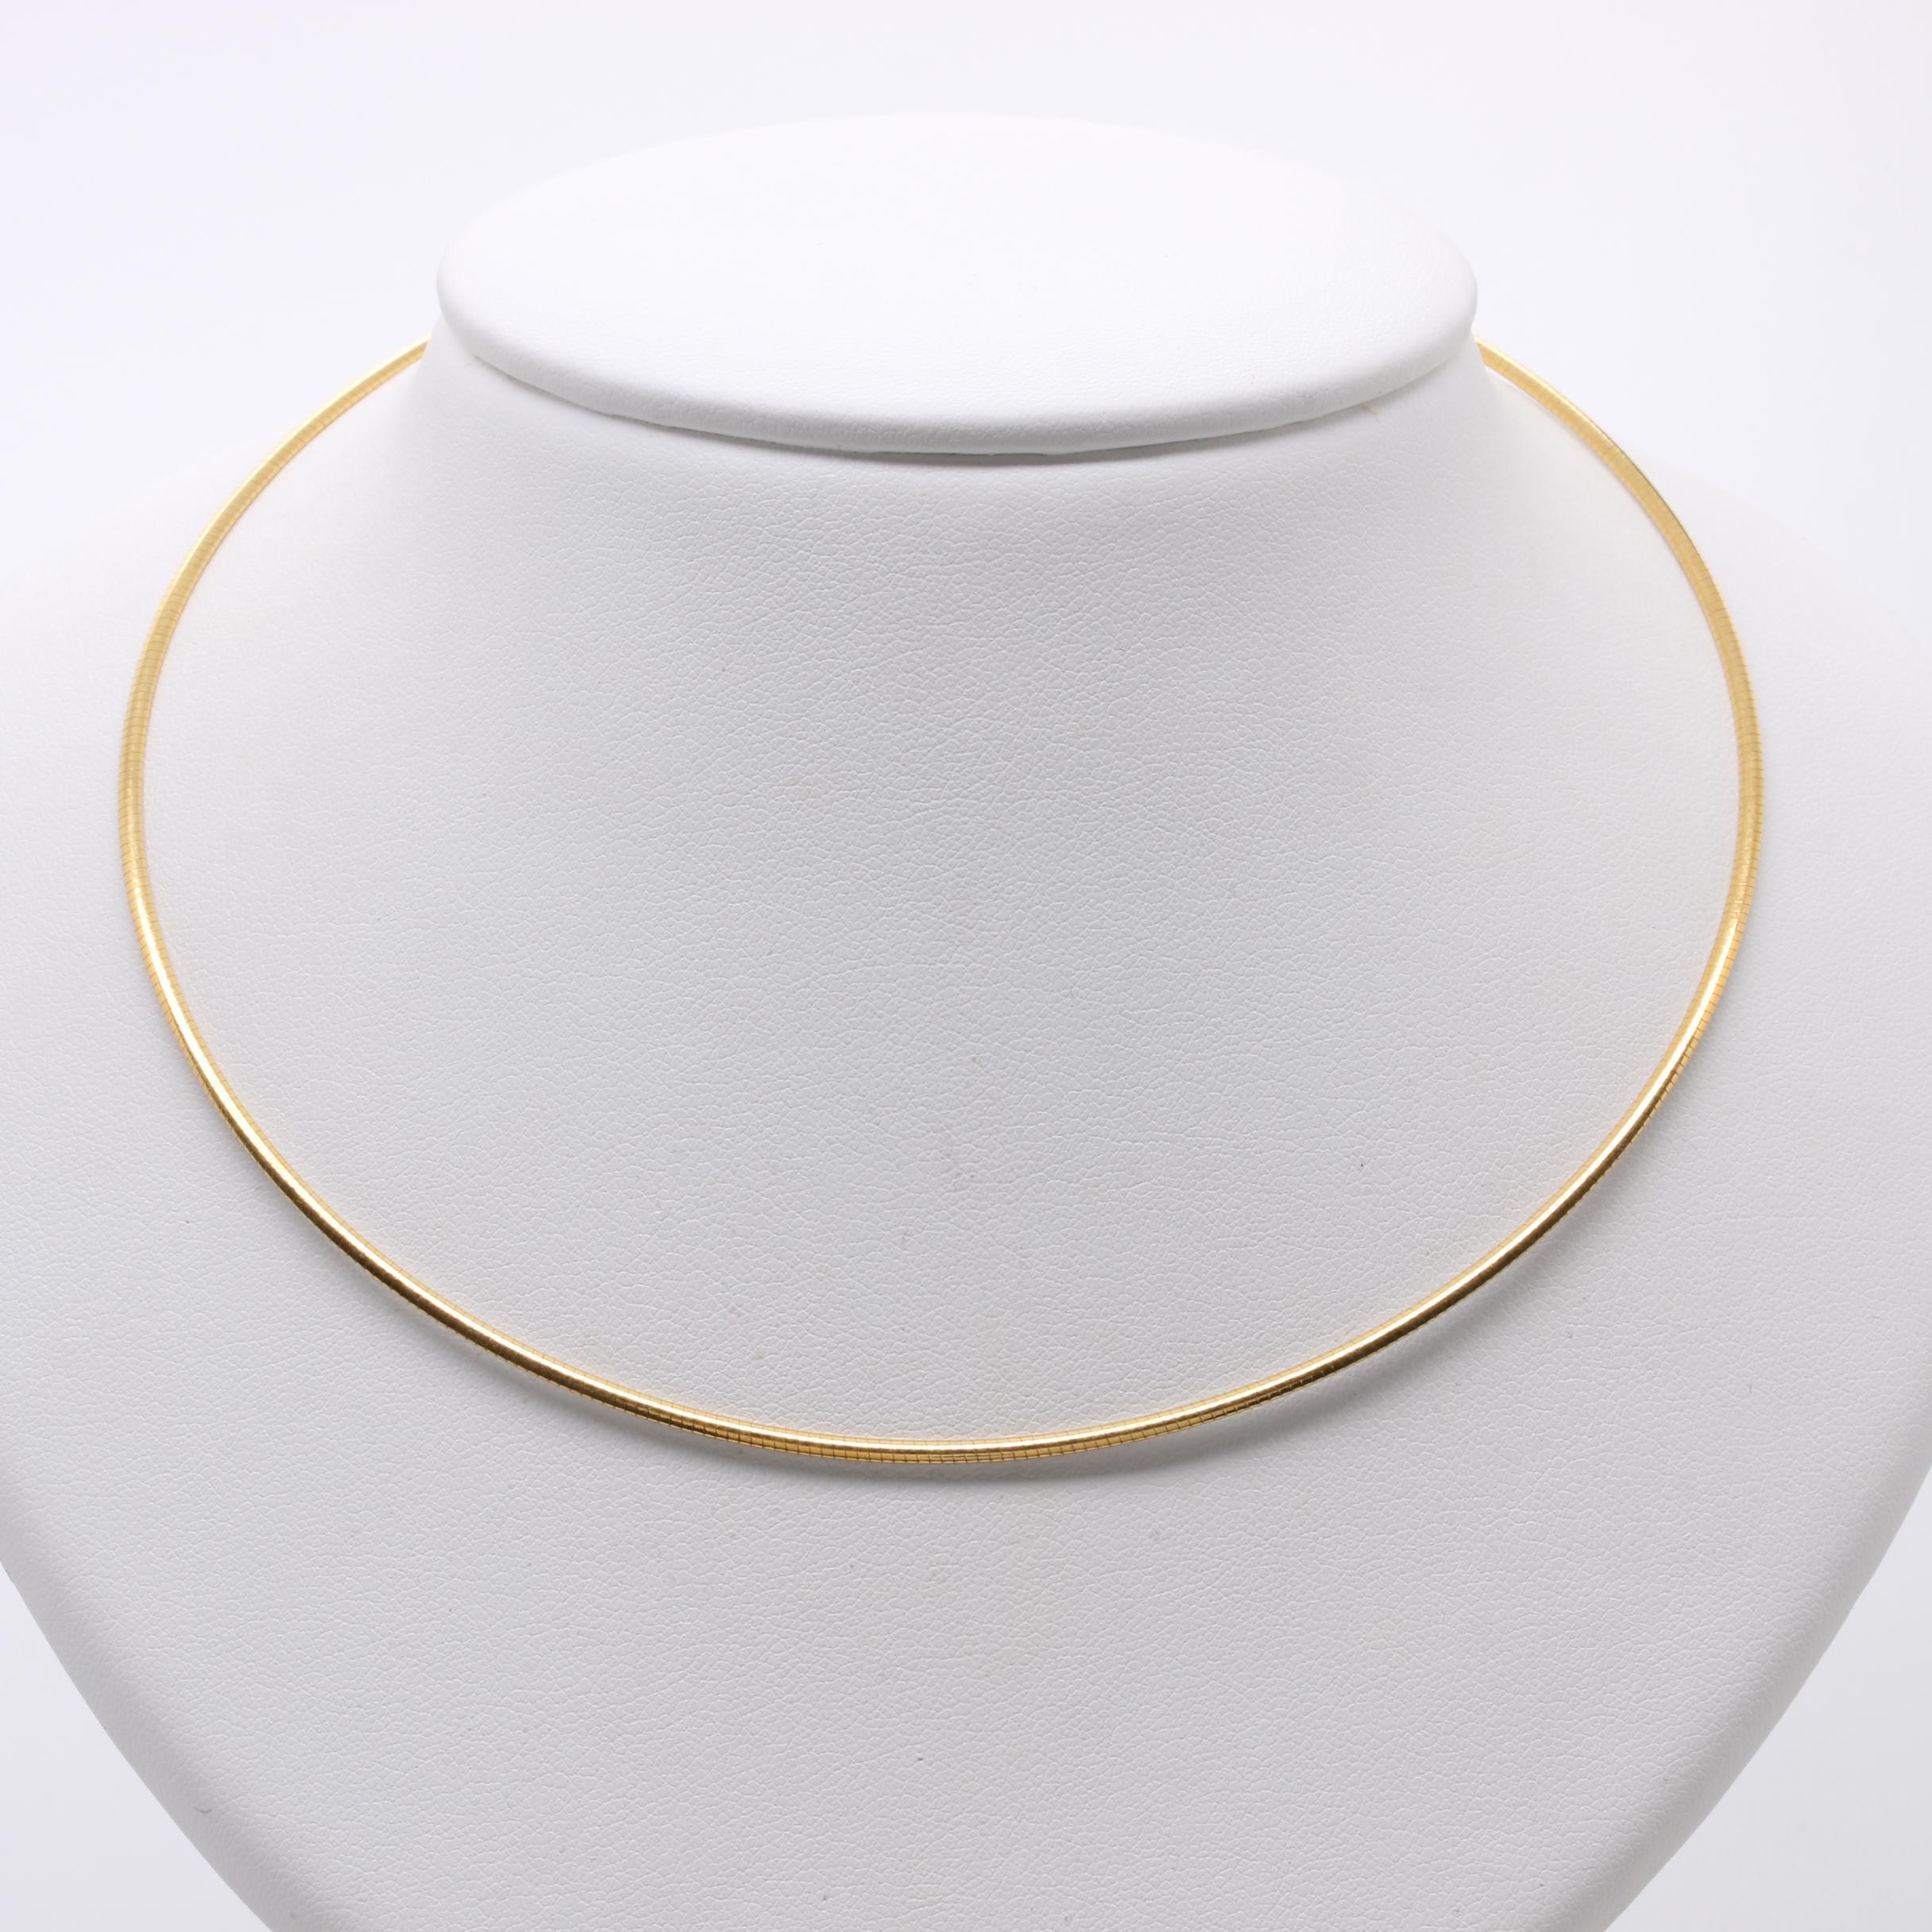 18K White and Yellow Gold Omega Necklace